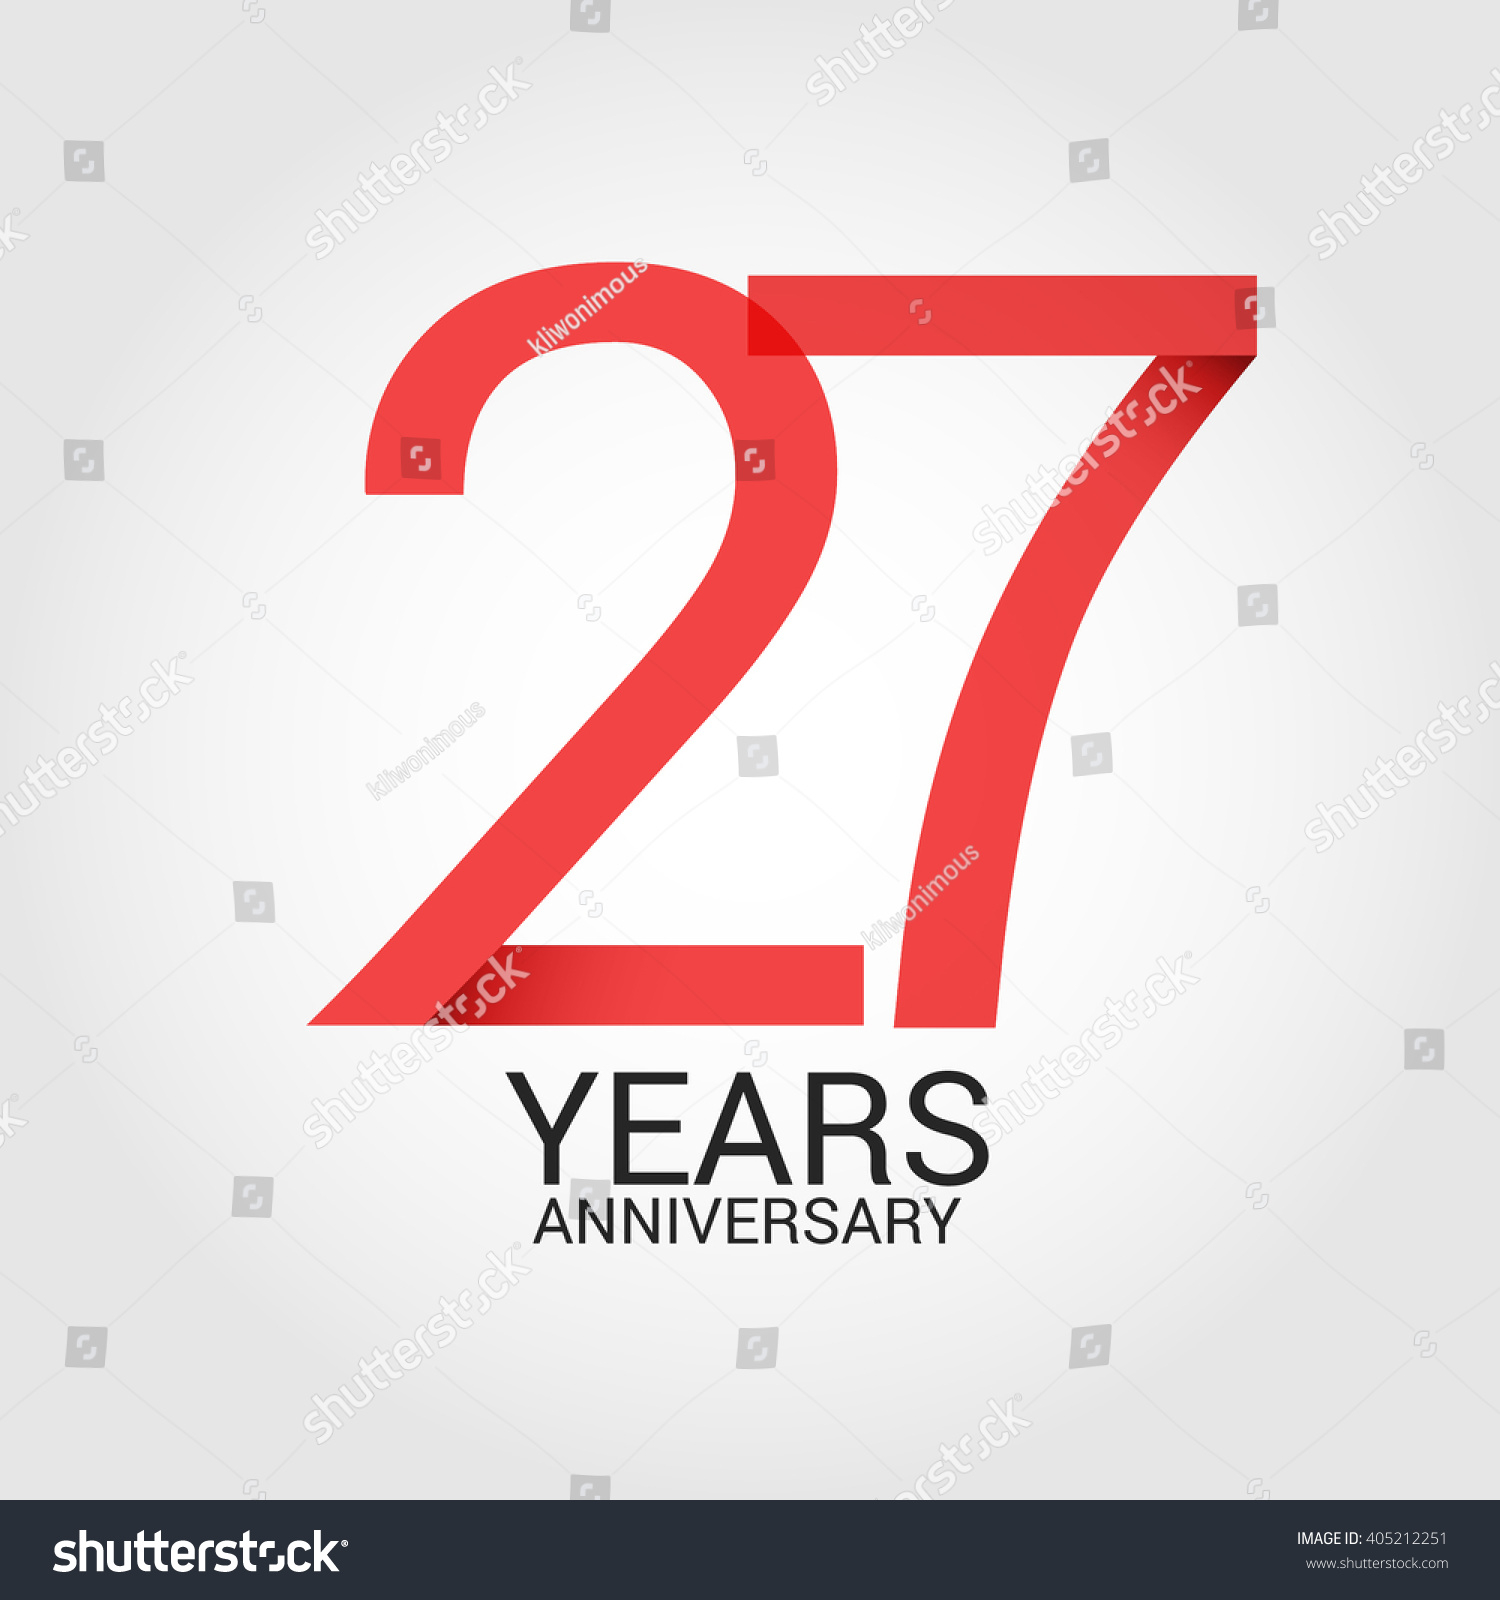 27 years anniversary signs symbols simple stock vector 405212251 27 years anniversary signs symbols simple design biocorpaavc Images